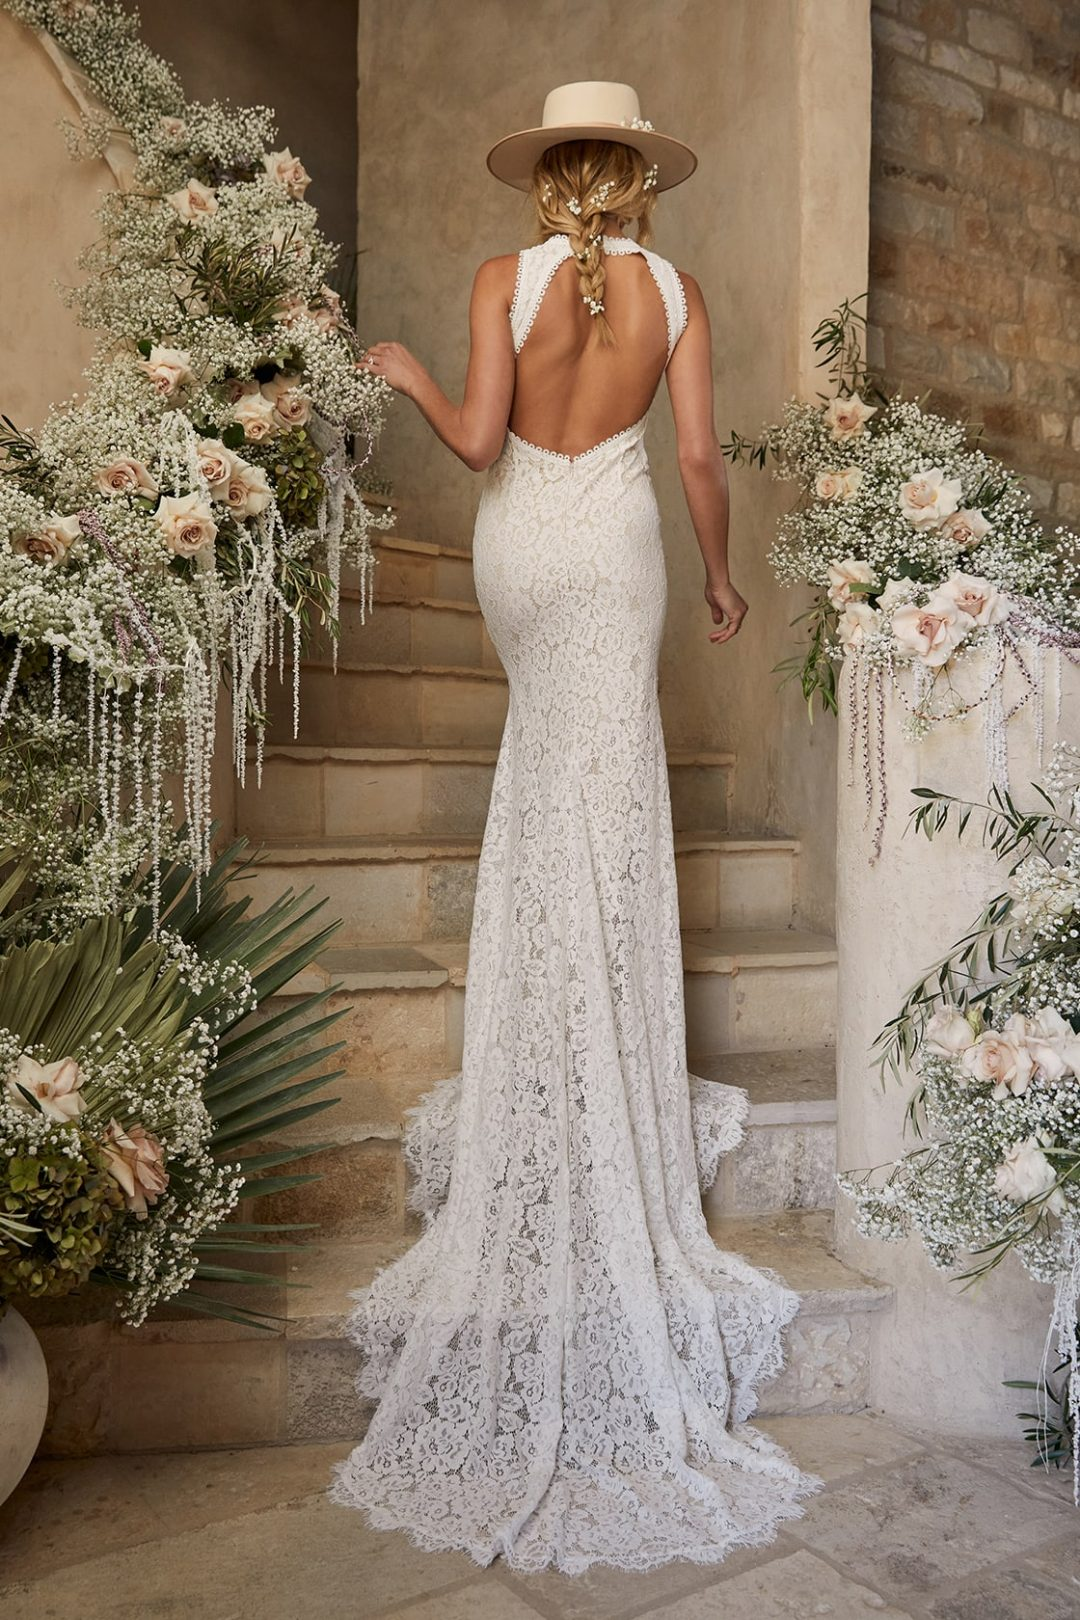 Affordable lace wedding dress with mermaid tail and  backless detail